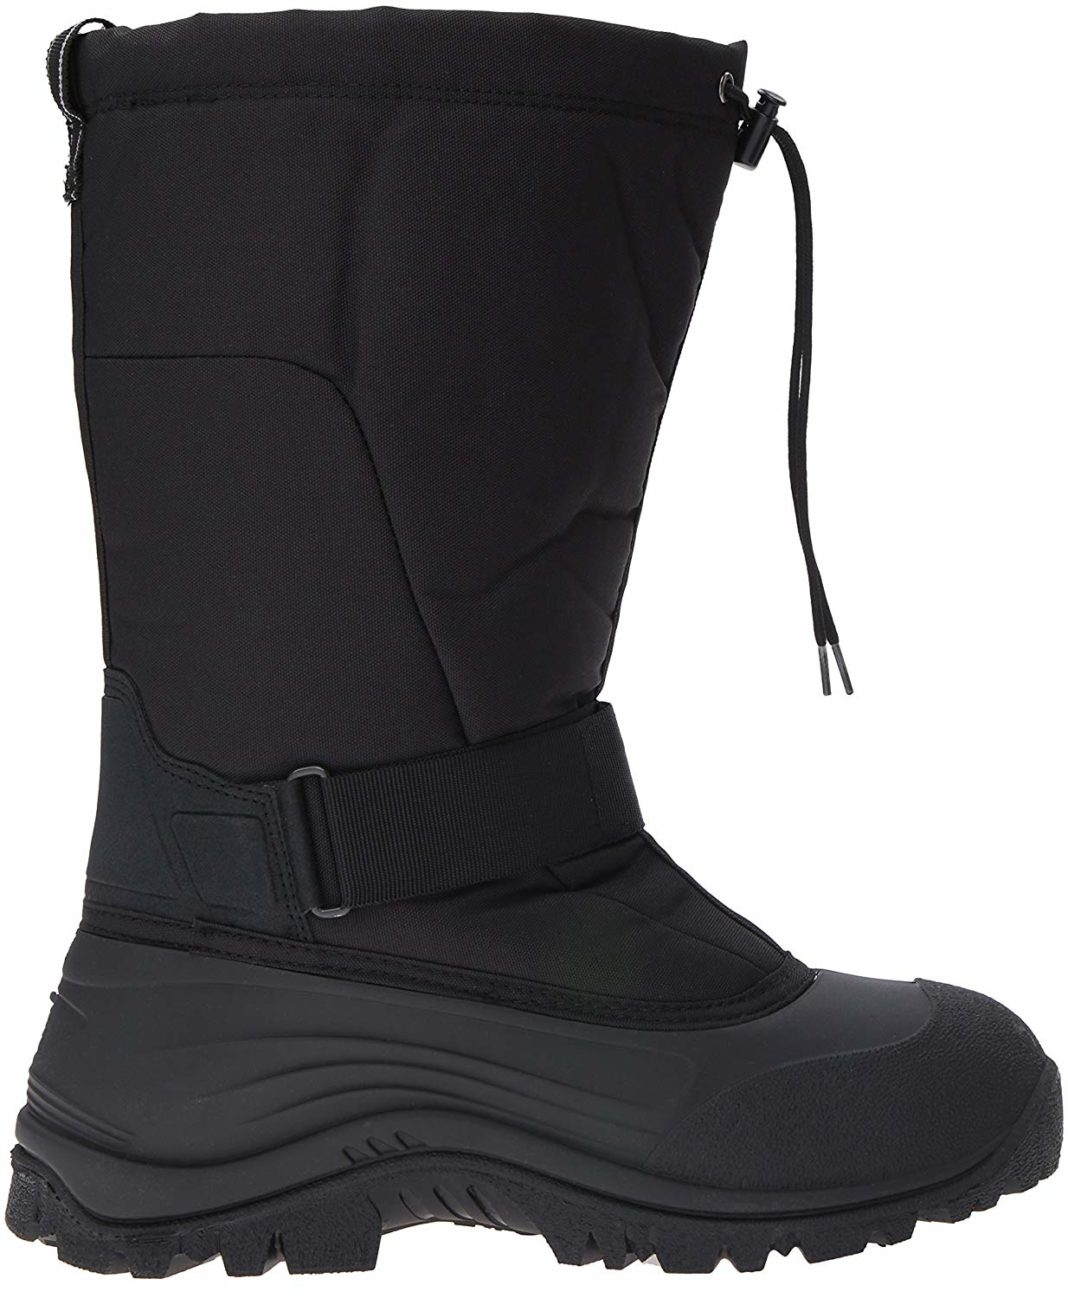 Men's Kamik Greenbay 4 Cold-Weather Boot - Insulation